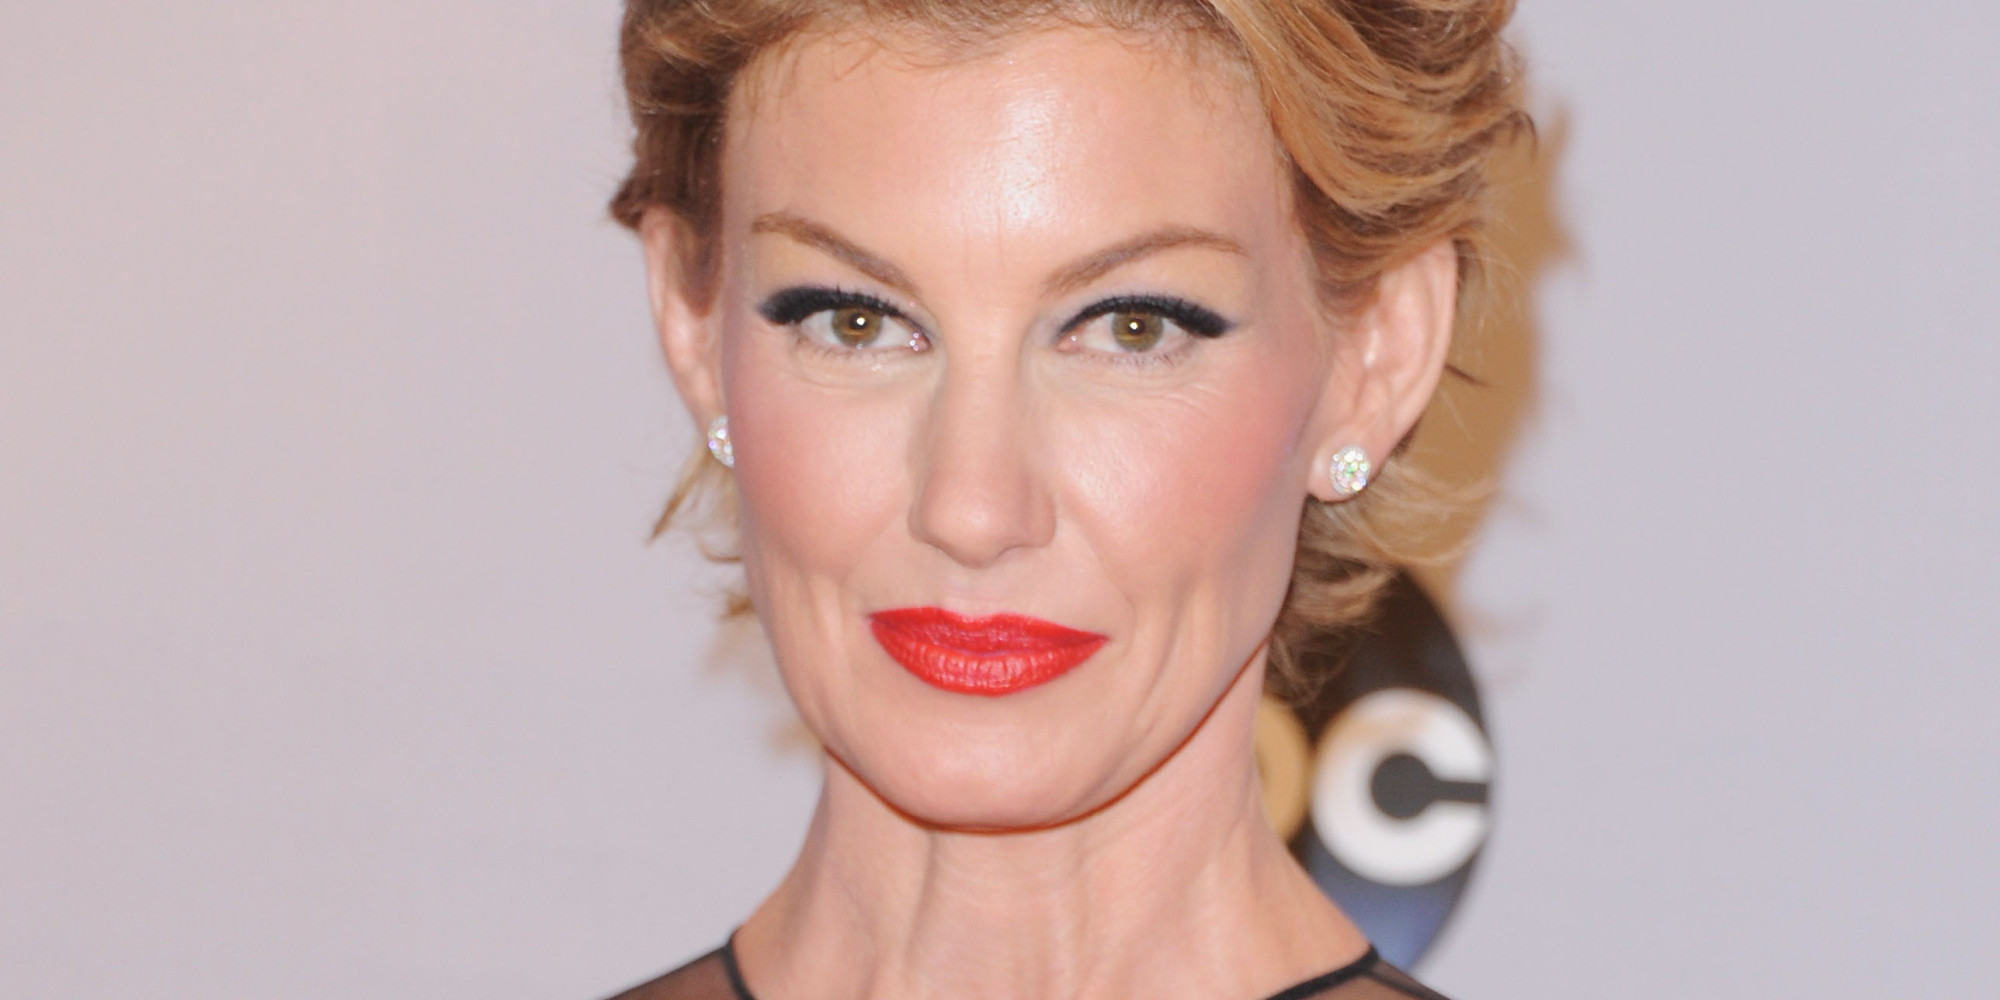 faith hill debuts a pixie cut at the cma awards | huffpost